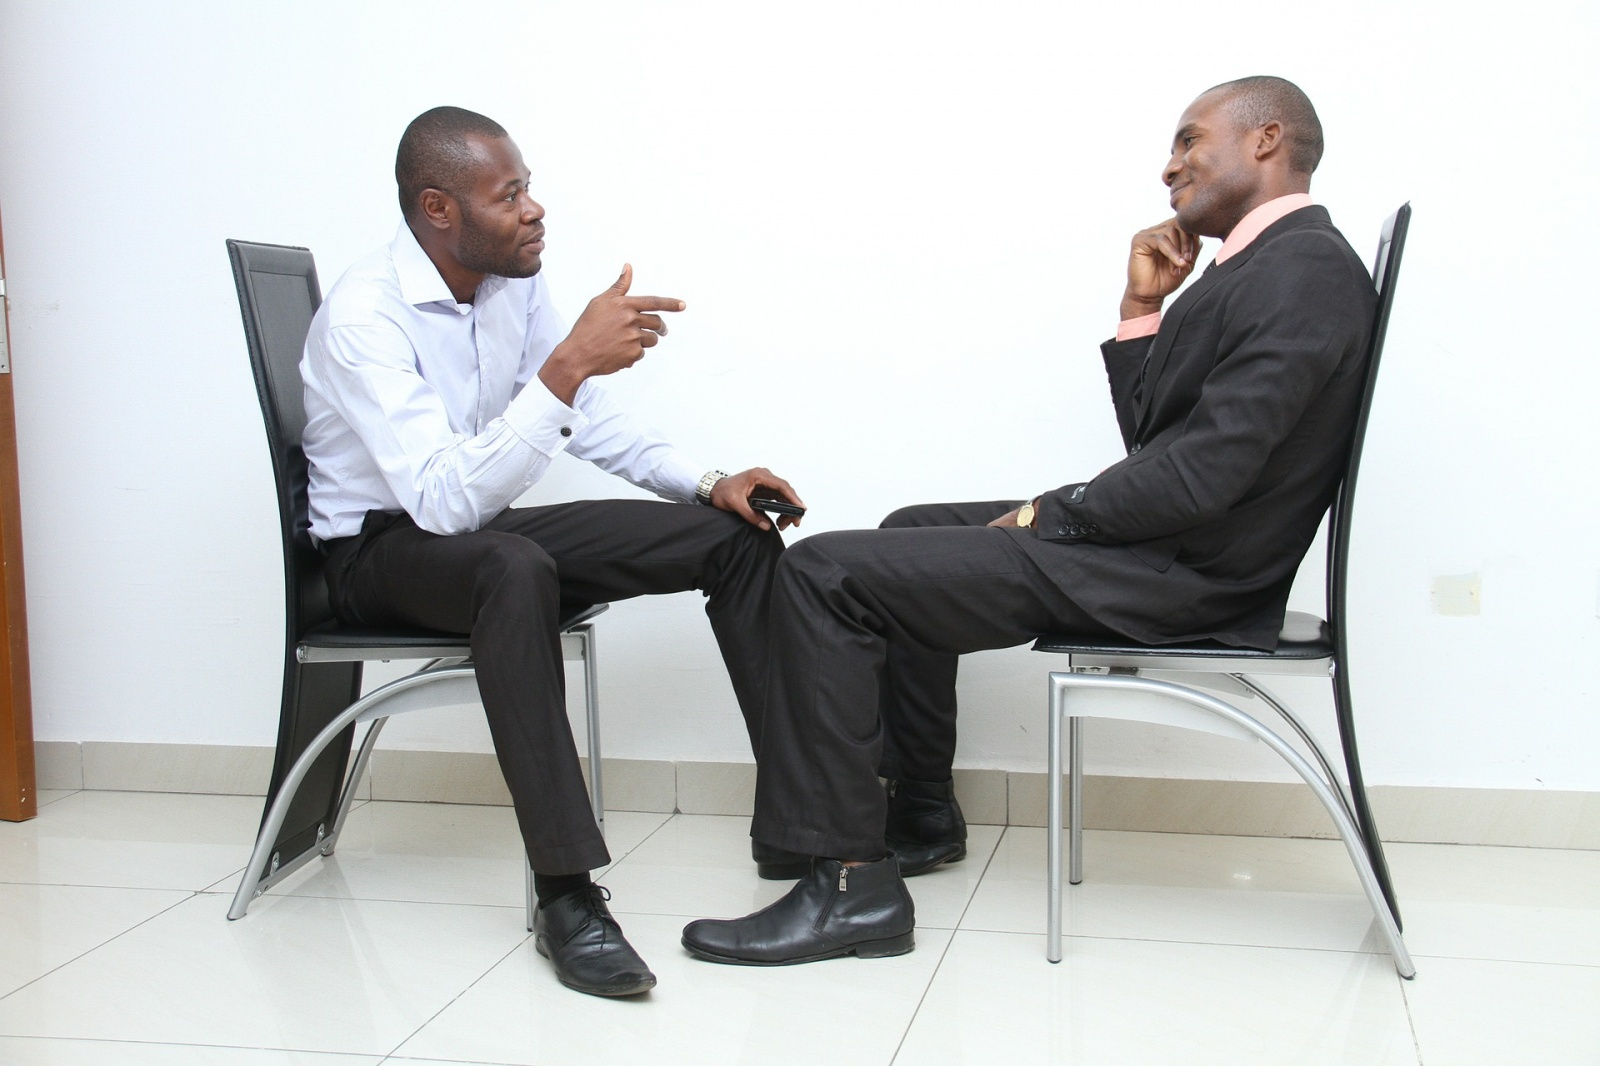 the-google-interview-process-is-harder-but-less-horrible-than-apples-image-cultofandroidcomwp-contentuploads201601Job-Interview-photo-by-Ibrahim-Adabara-jpg